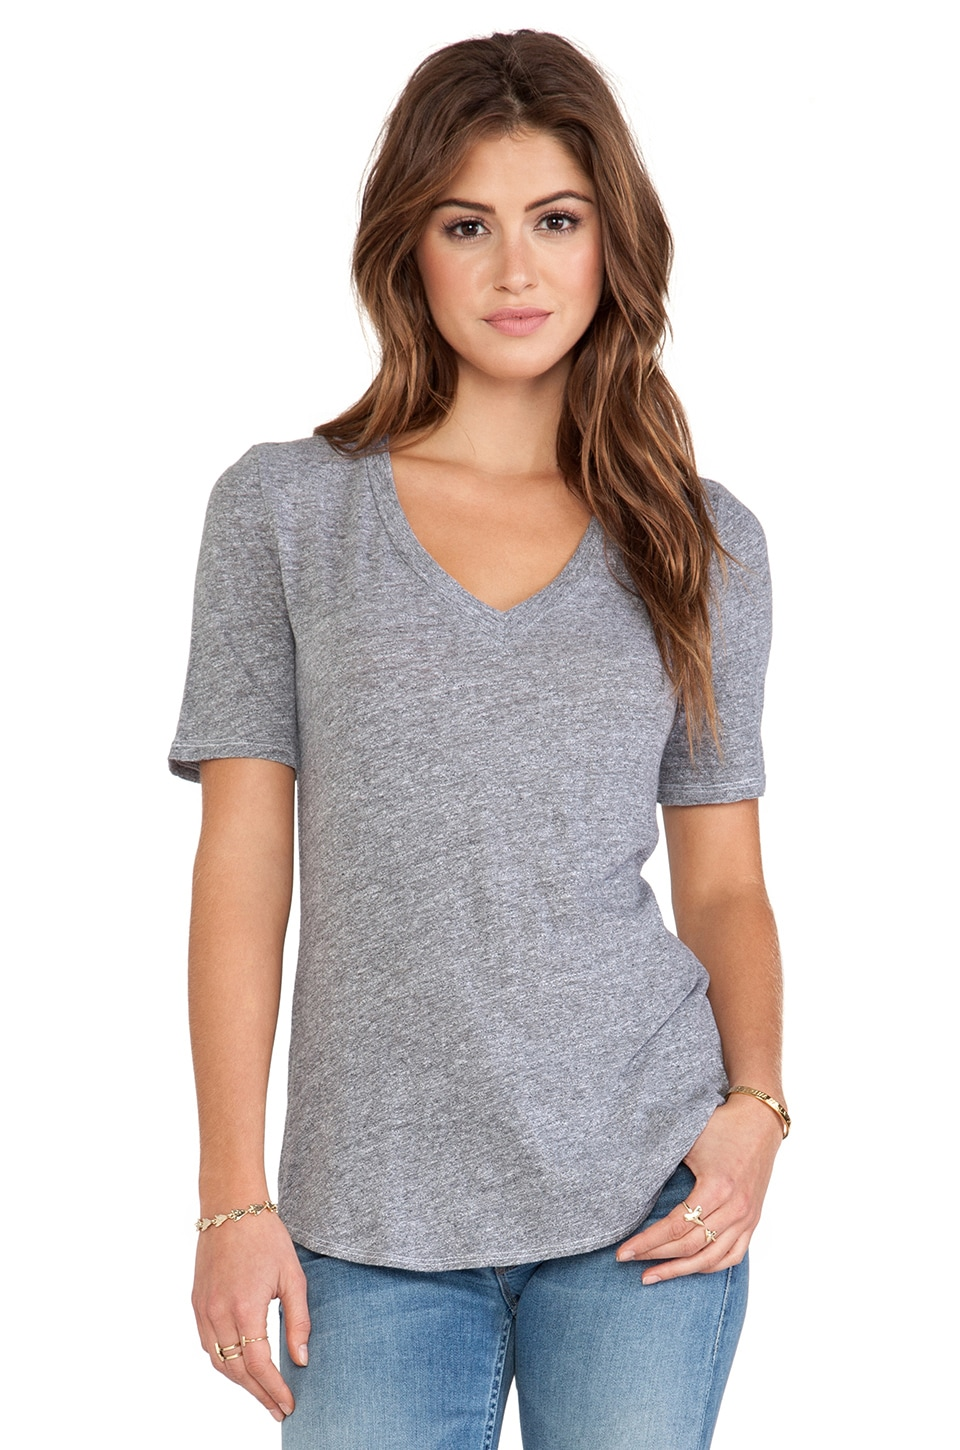 Lanston V Neck Tee in Heather